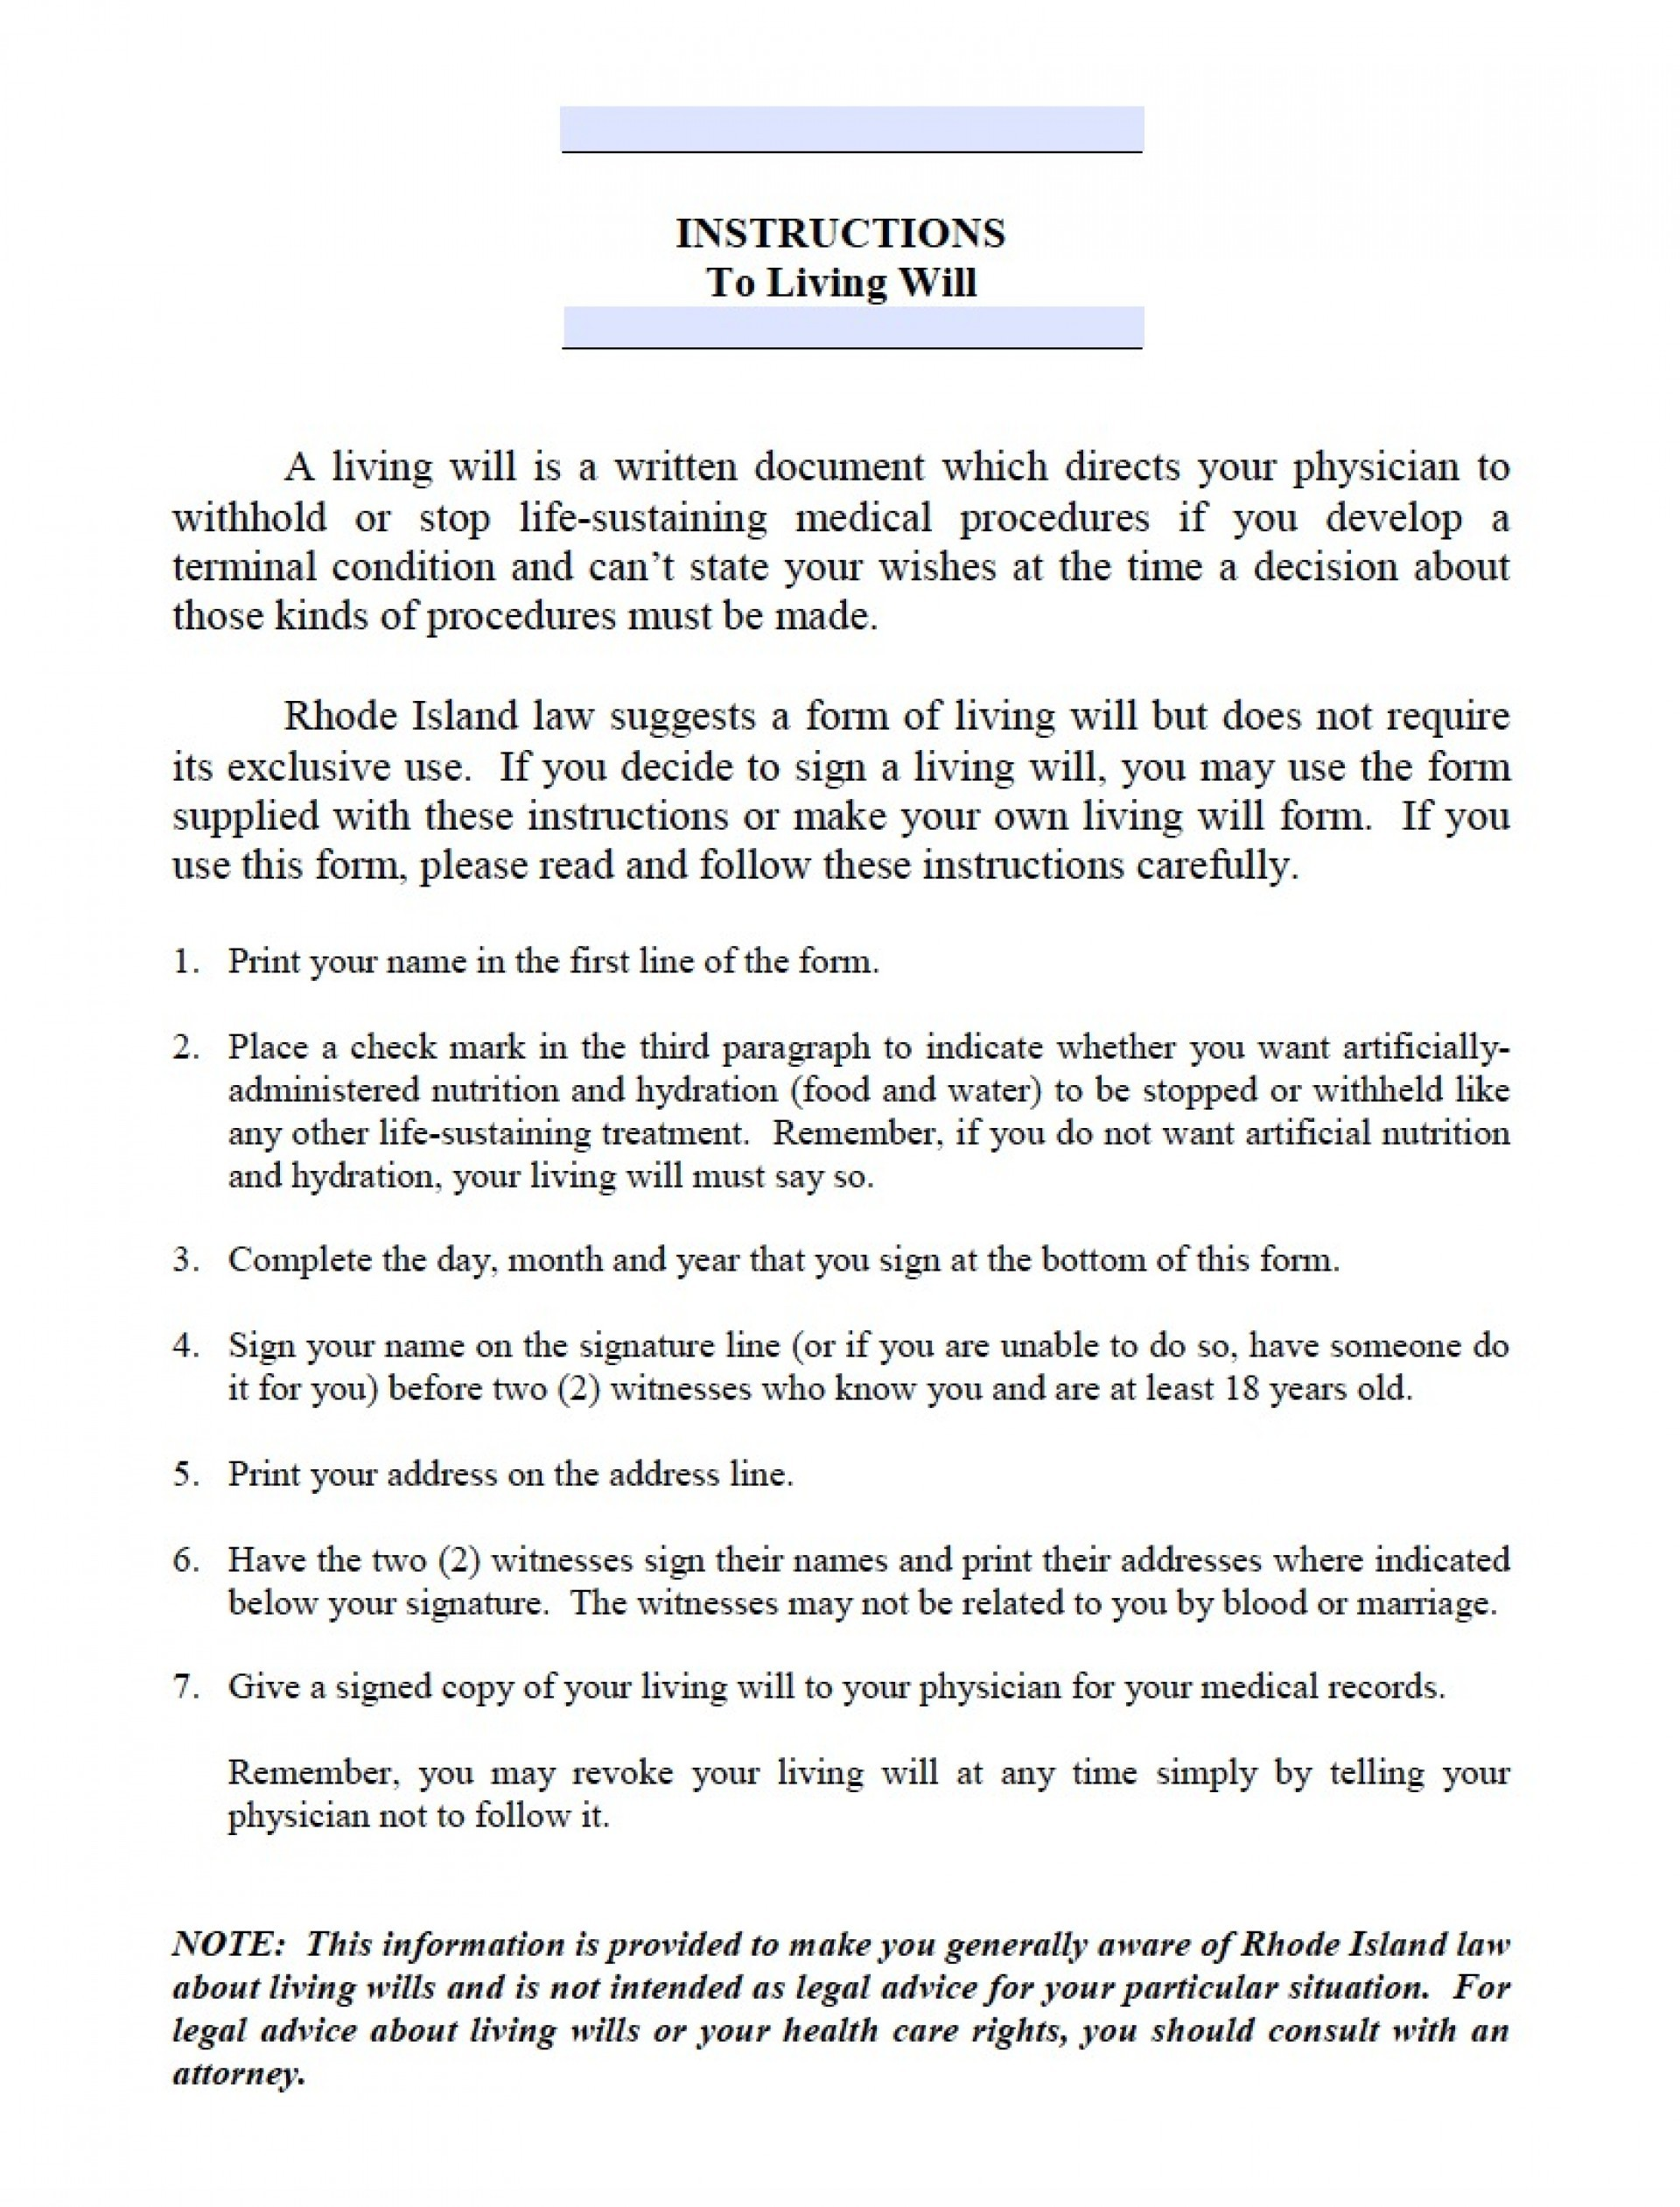 living will form free download nz  Living Will Form Free Download Nz | MBM Legal - living will form free download nz